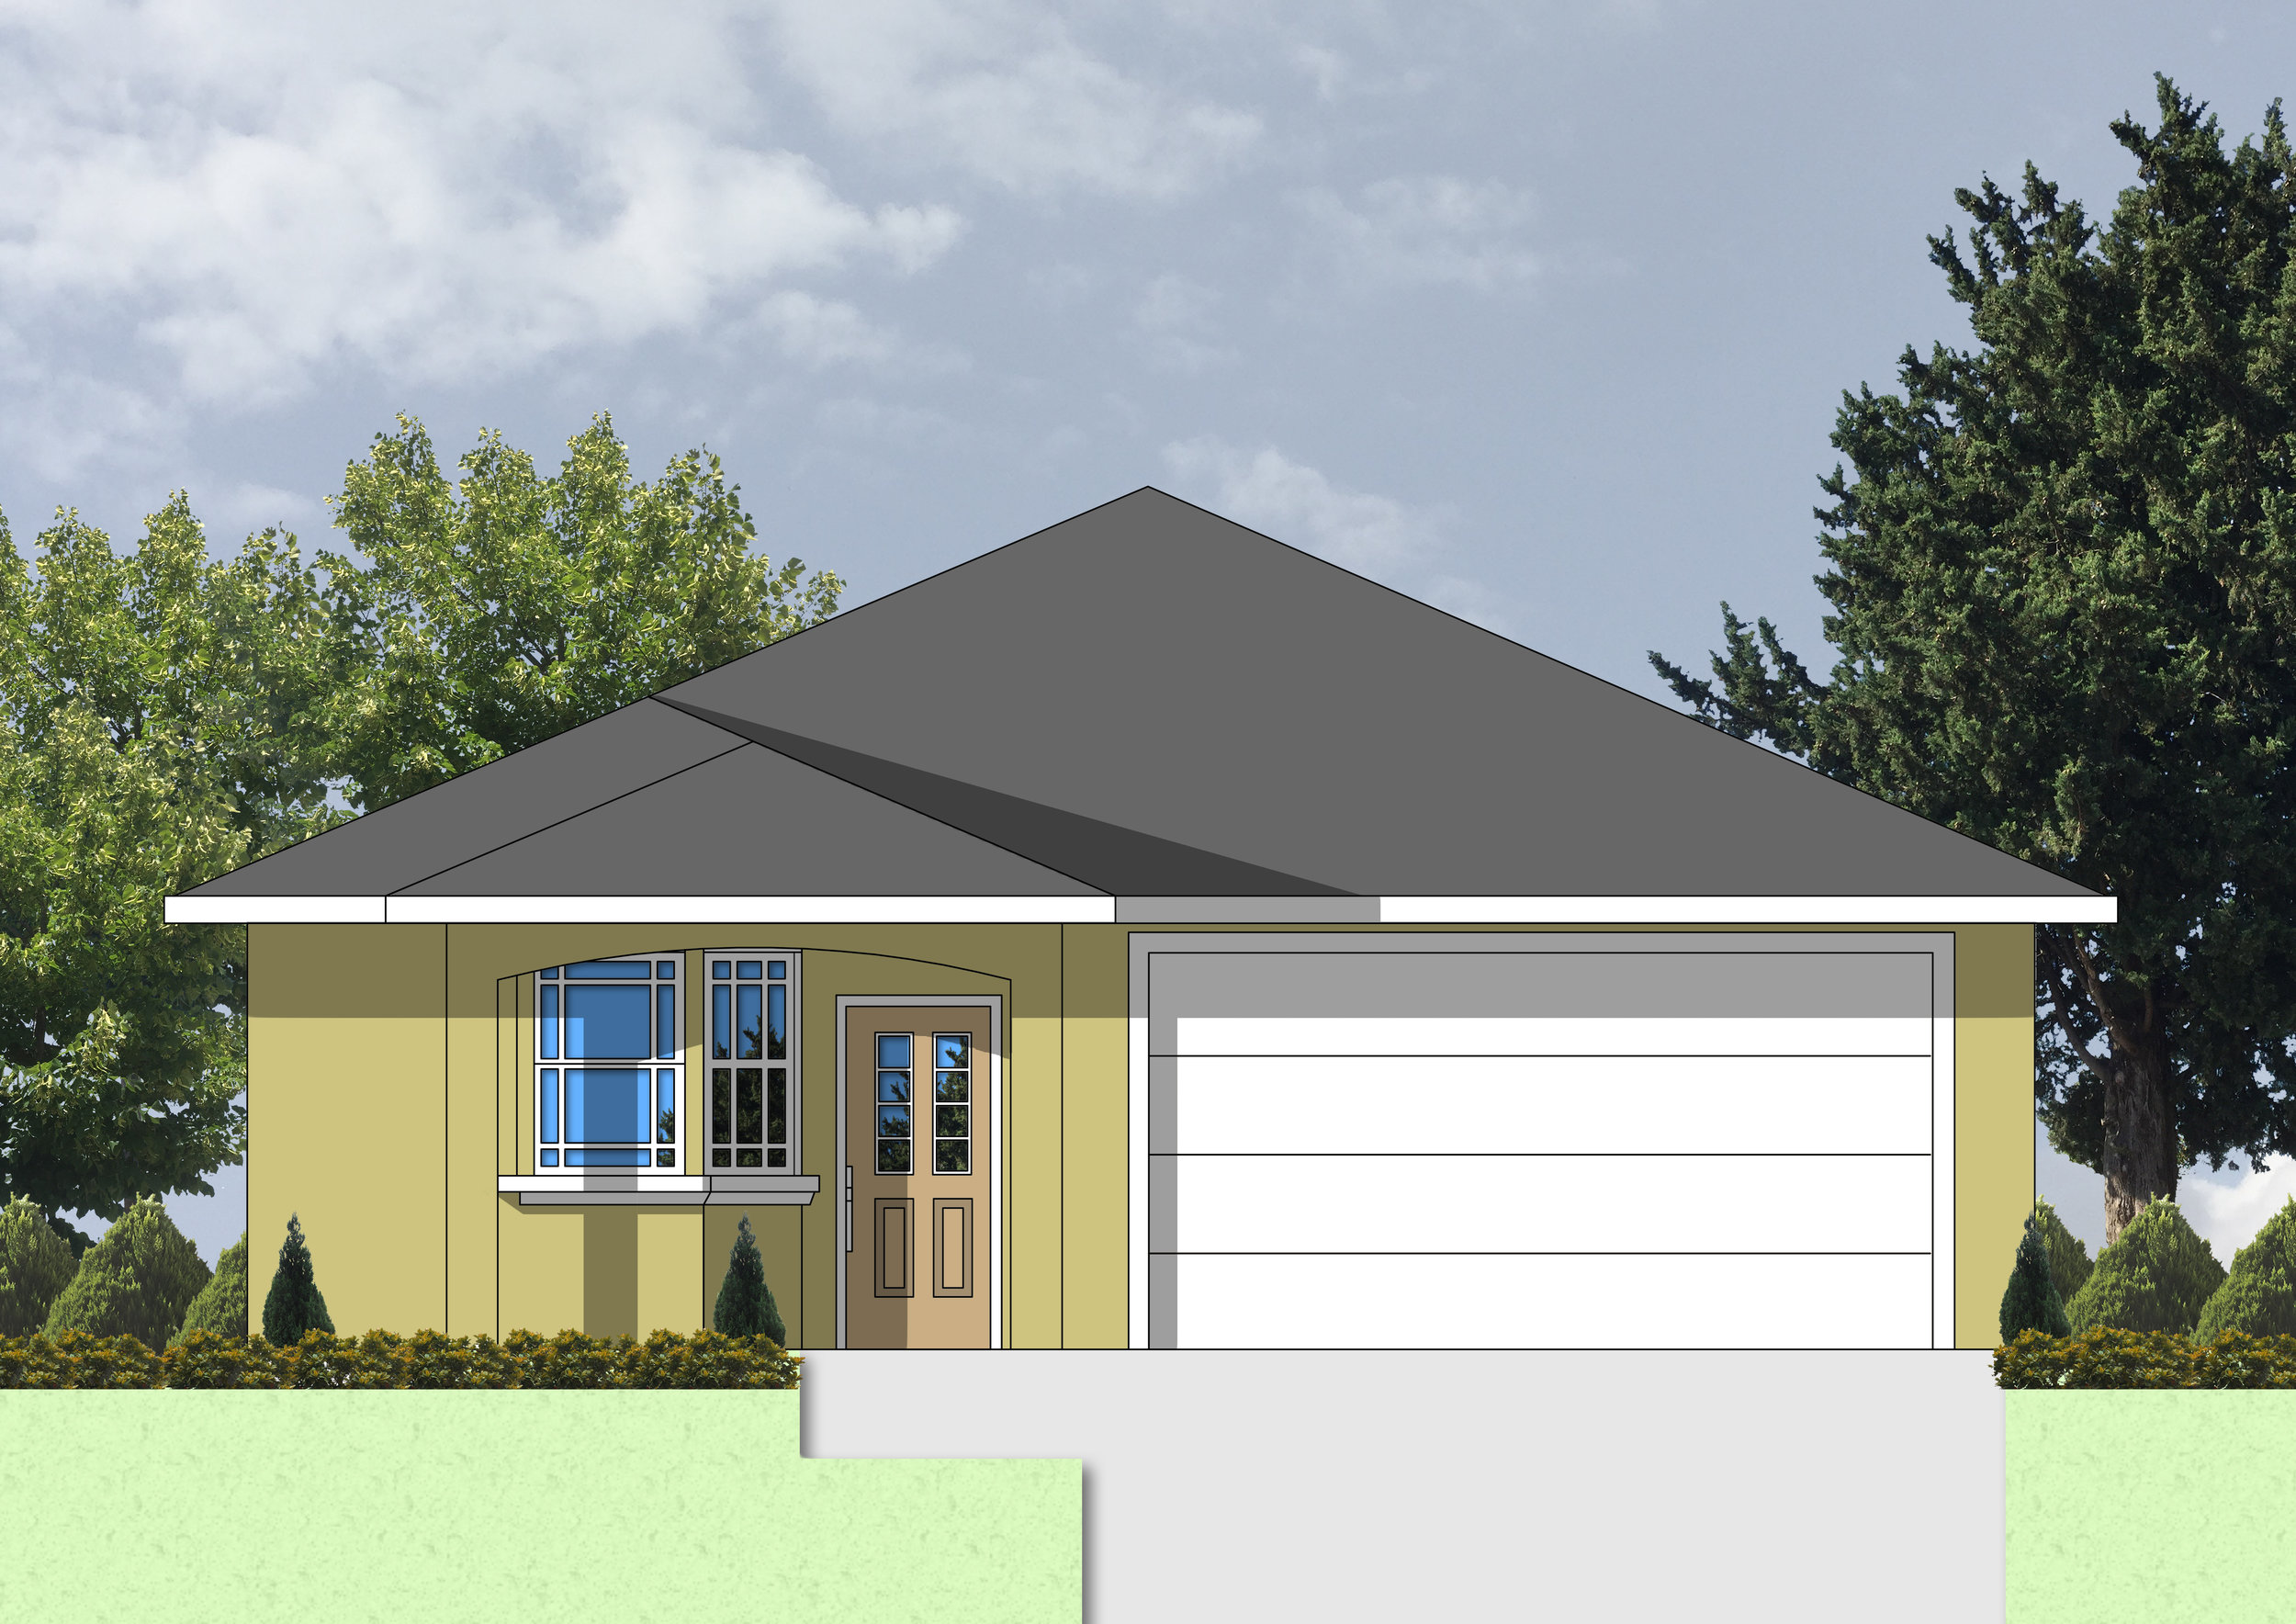 780 A ELEVATION RENDERING - revisioned 2.jpg